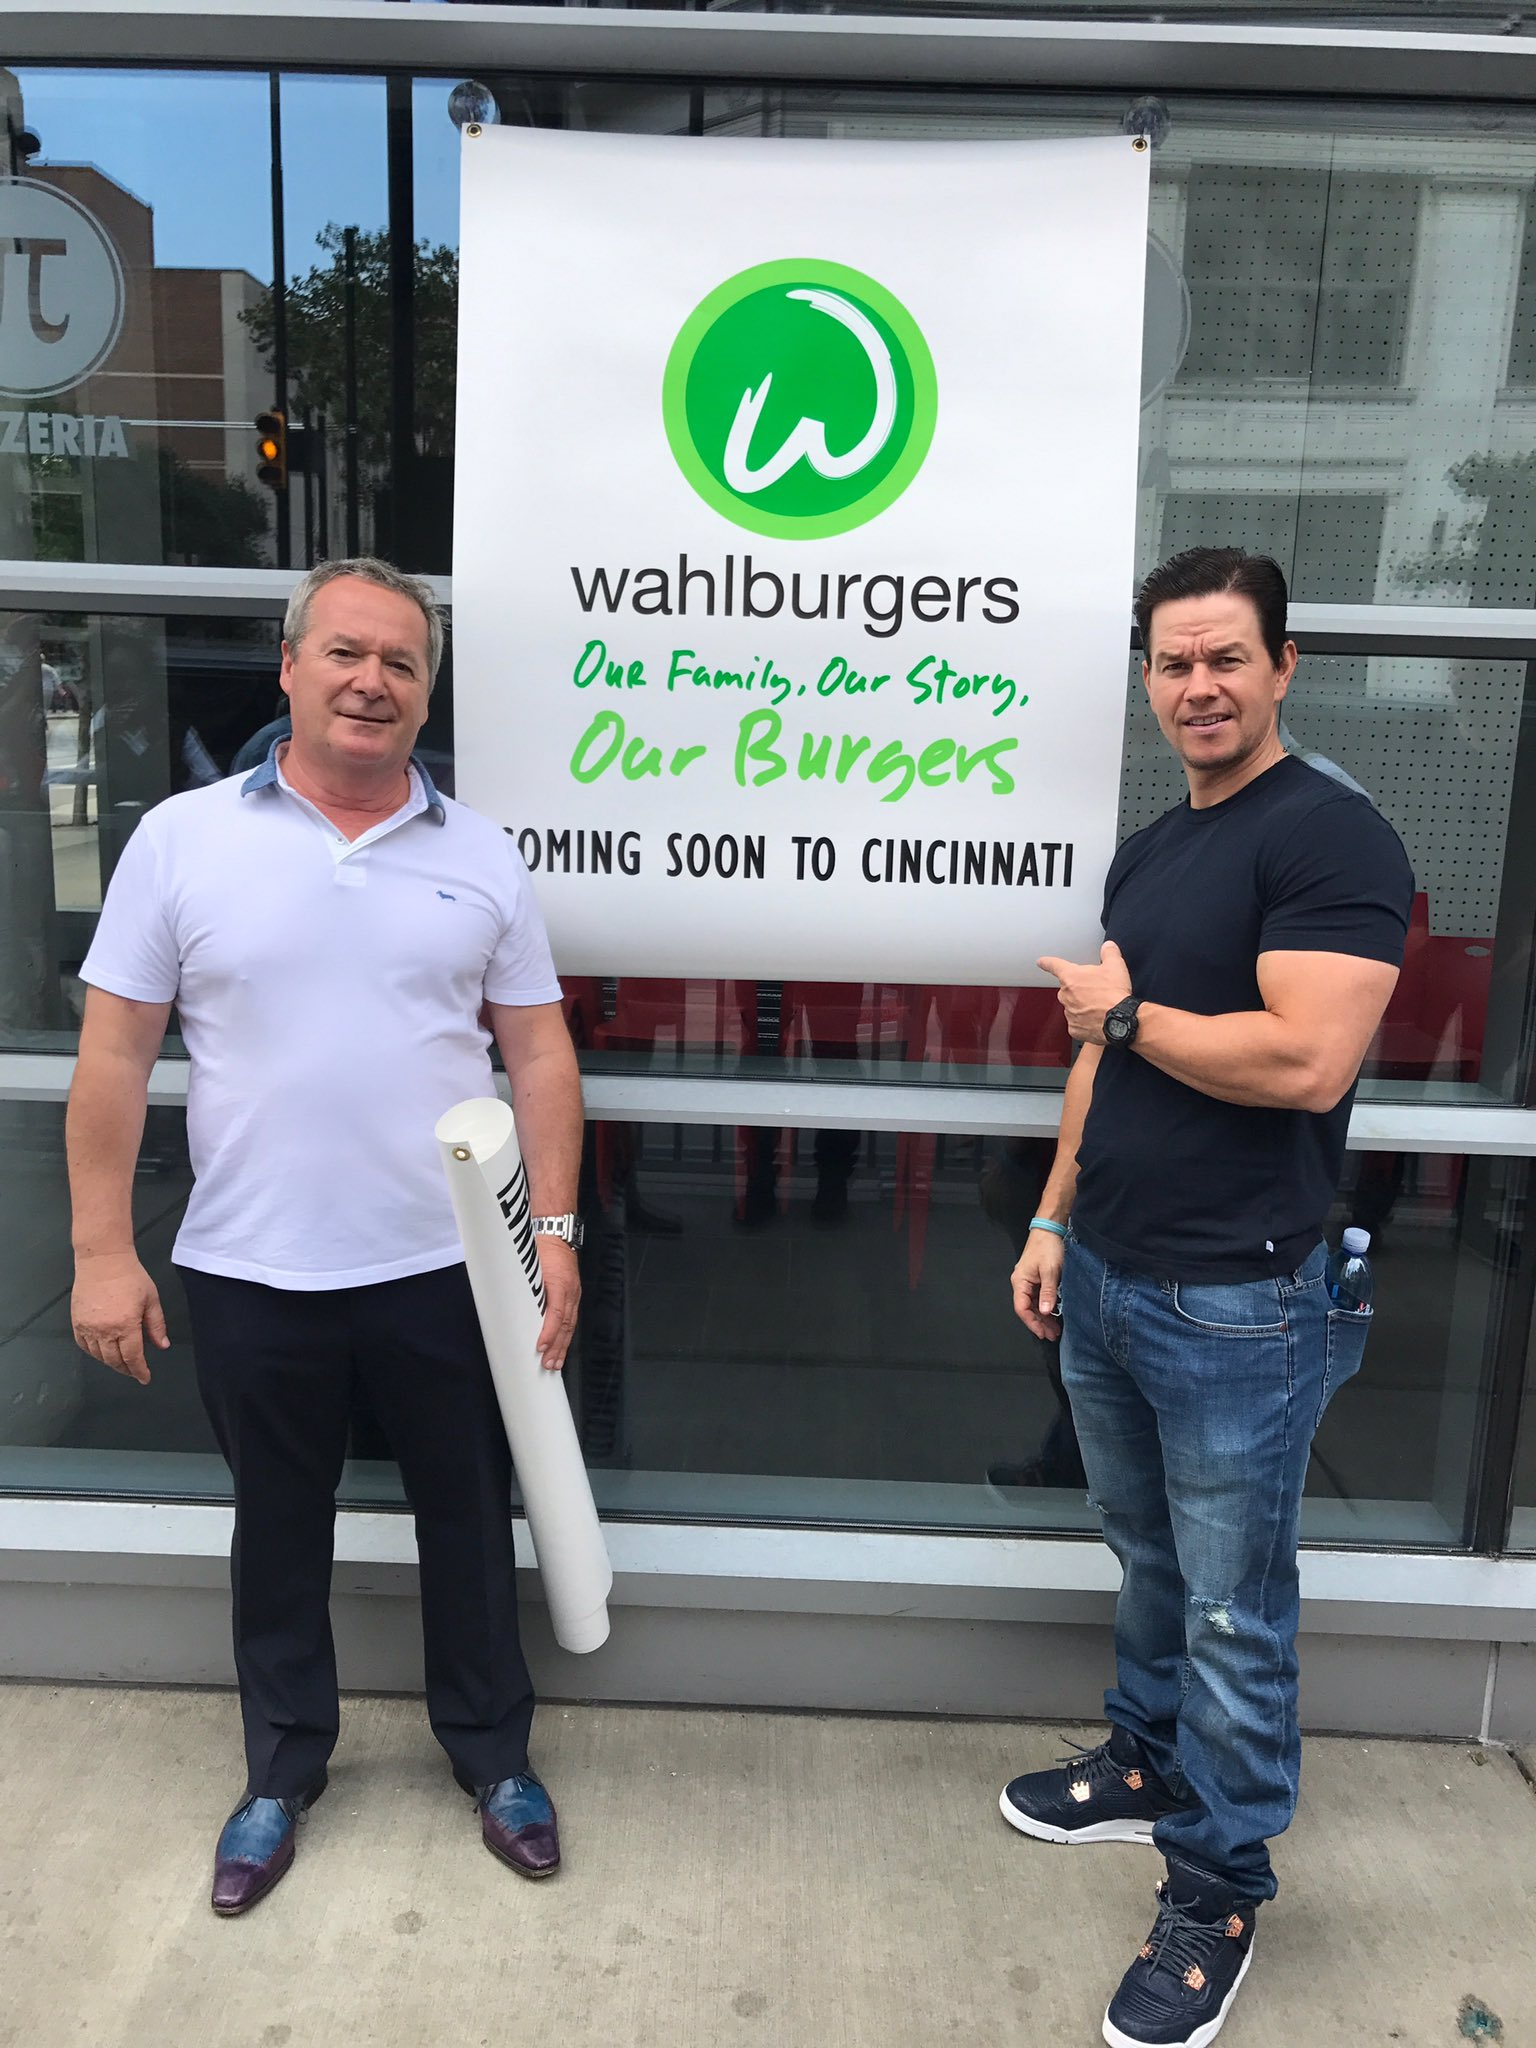 Get ready, Cincinnati! ���� #Wahlburgers https://t.co/zl8HBgS9Ez